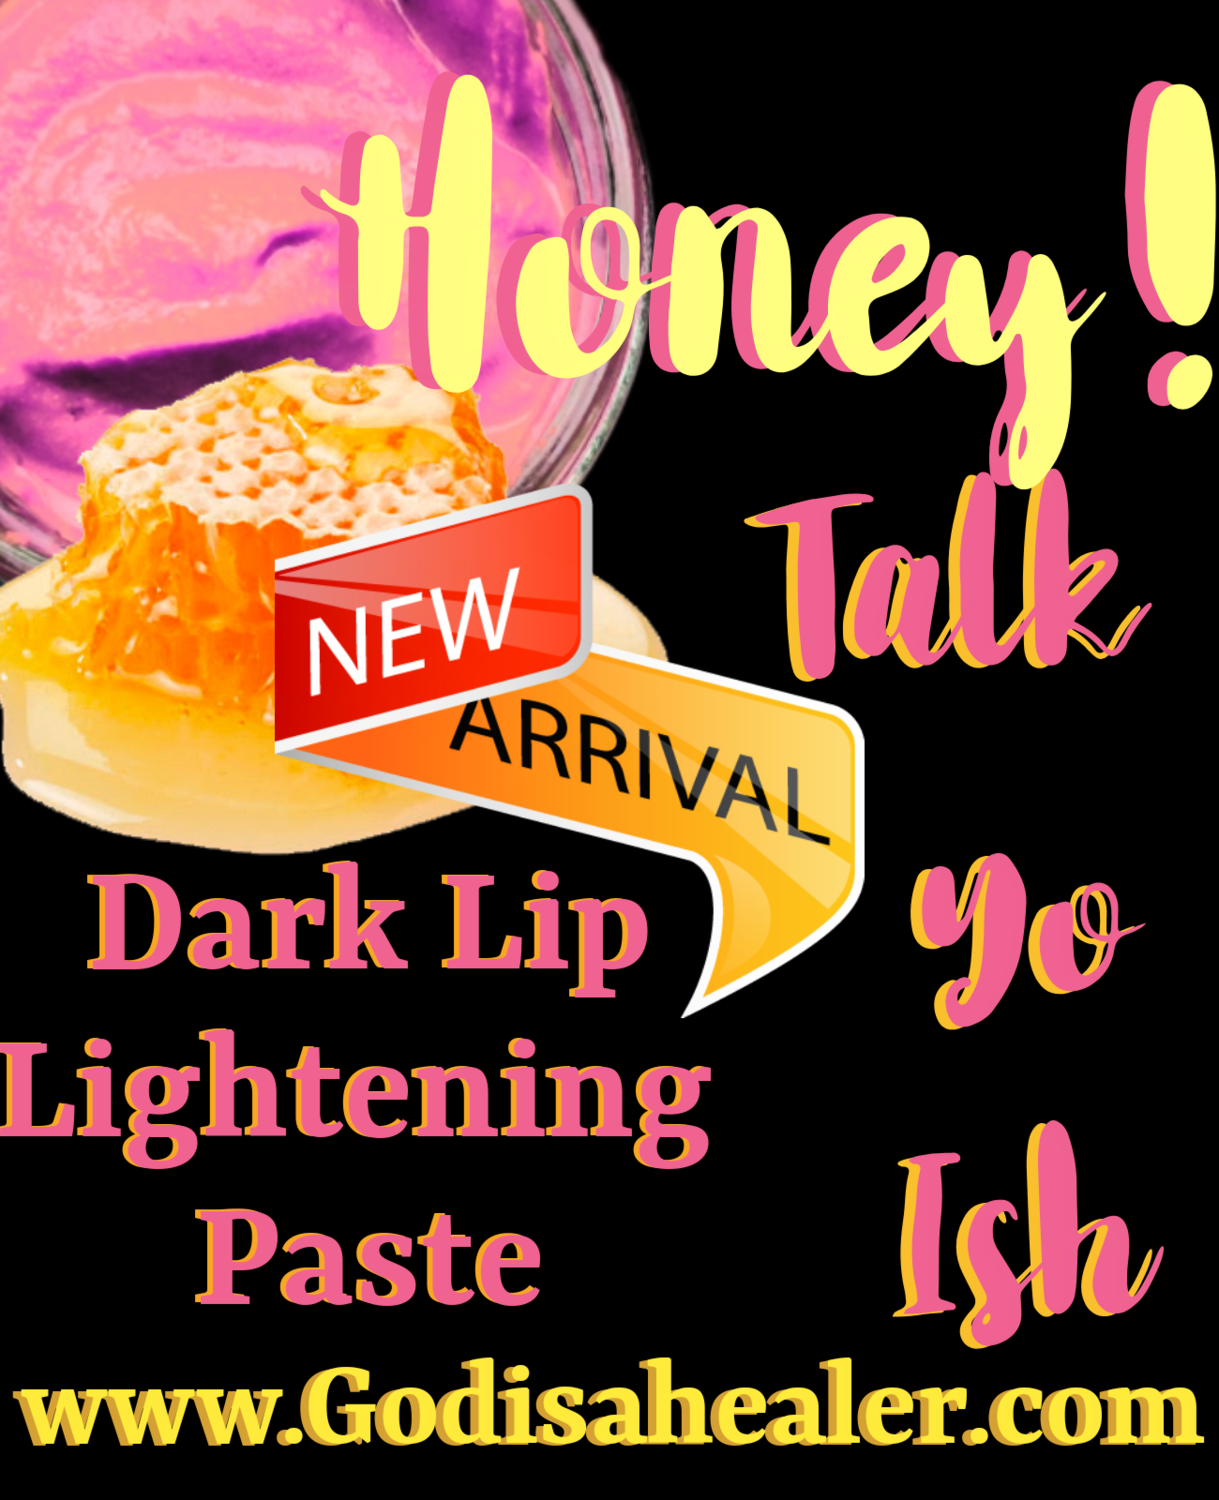 Honey! Talk Yo Ish Dark Lip Lightening Paste This formula has been proven to fade dark smokers lips, and prevent future darkening. A little goes a lonnng way! Just swipe on fingertip and scrub lips.